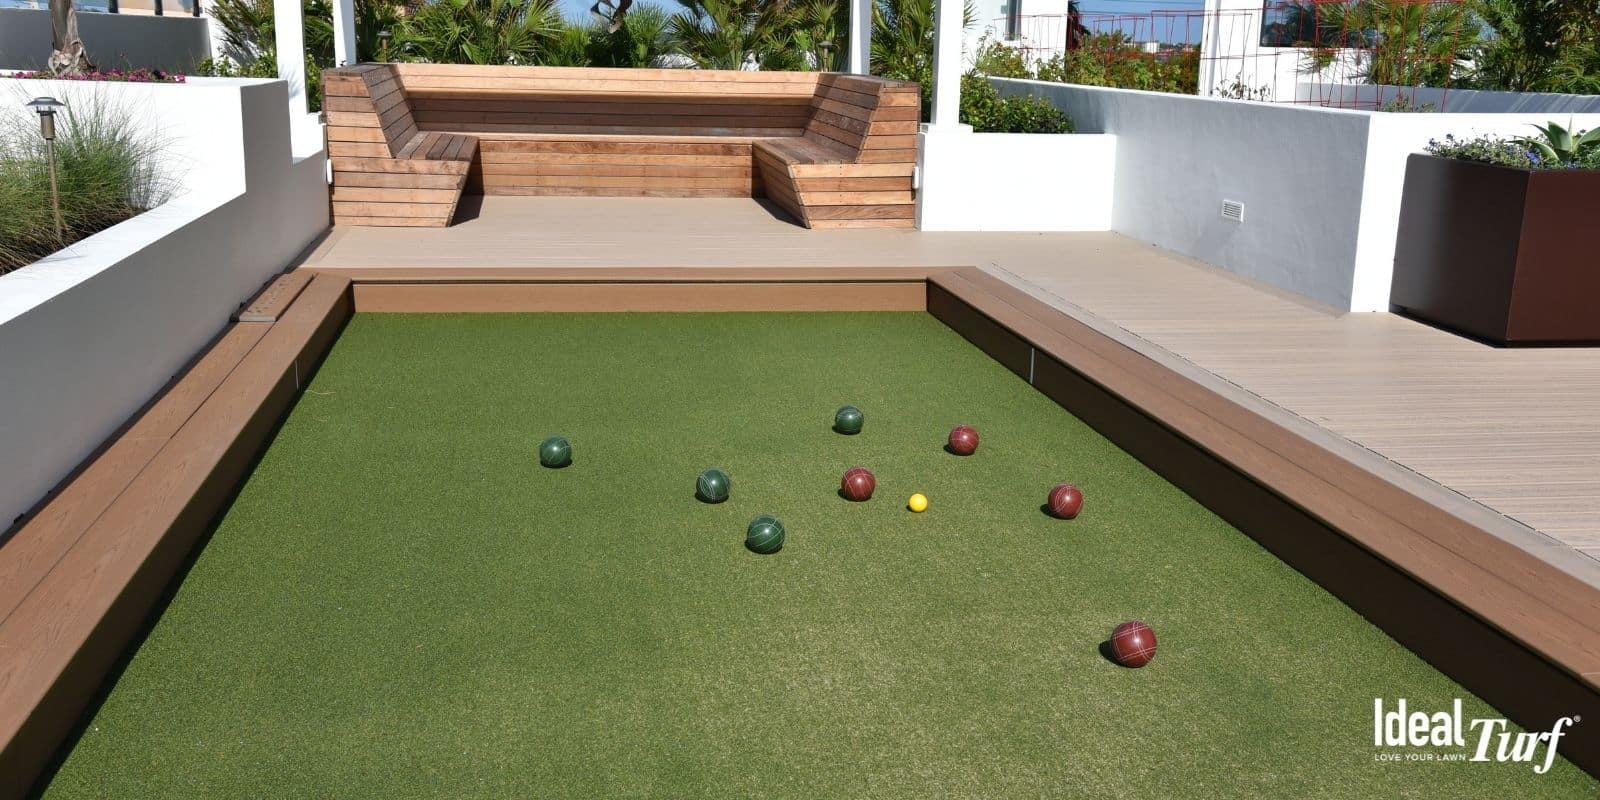 Bocce balls at one end of an artificial turf bocce ball court in backyard